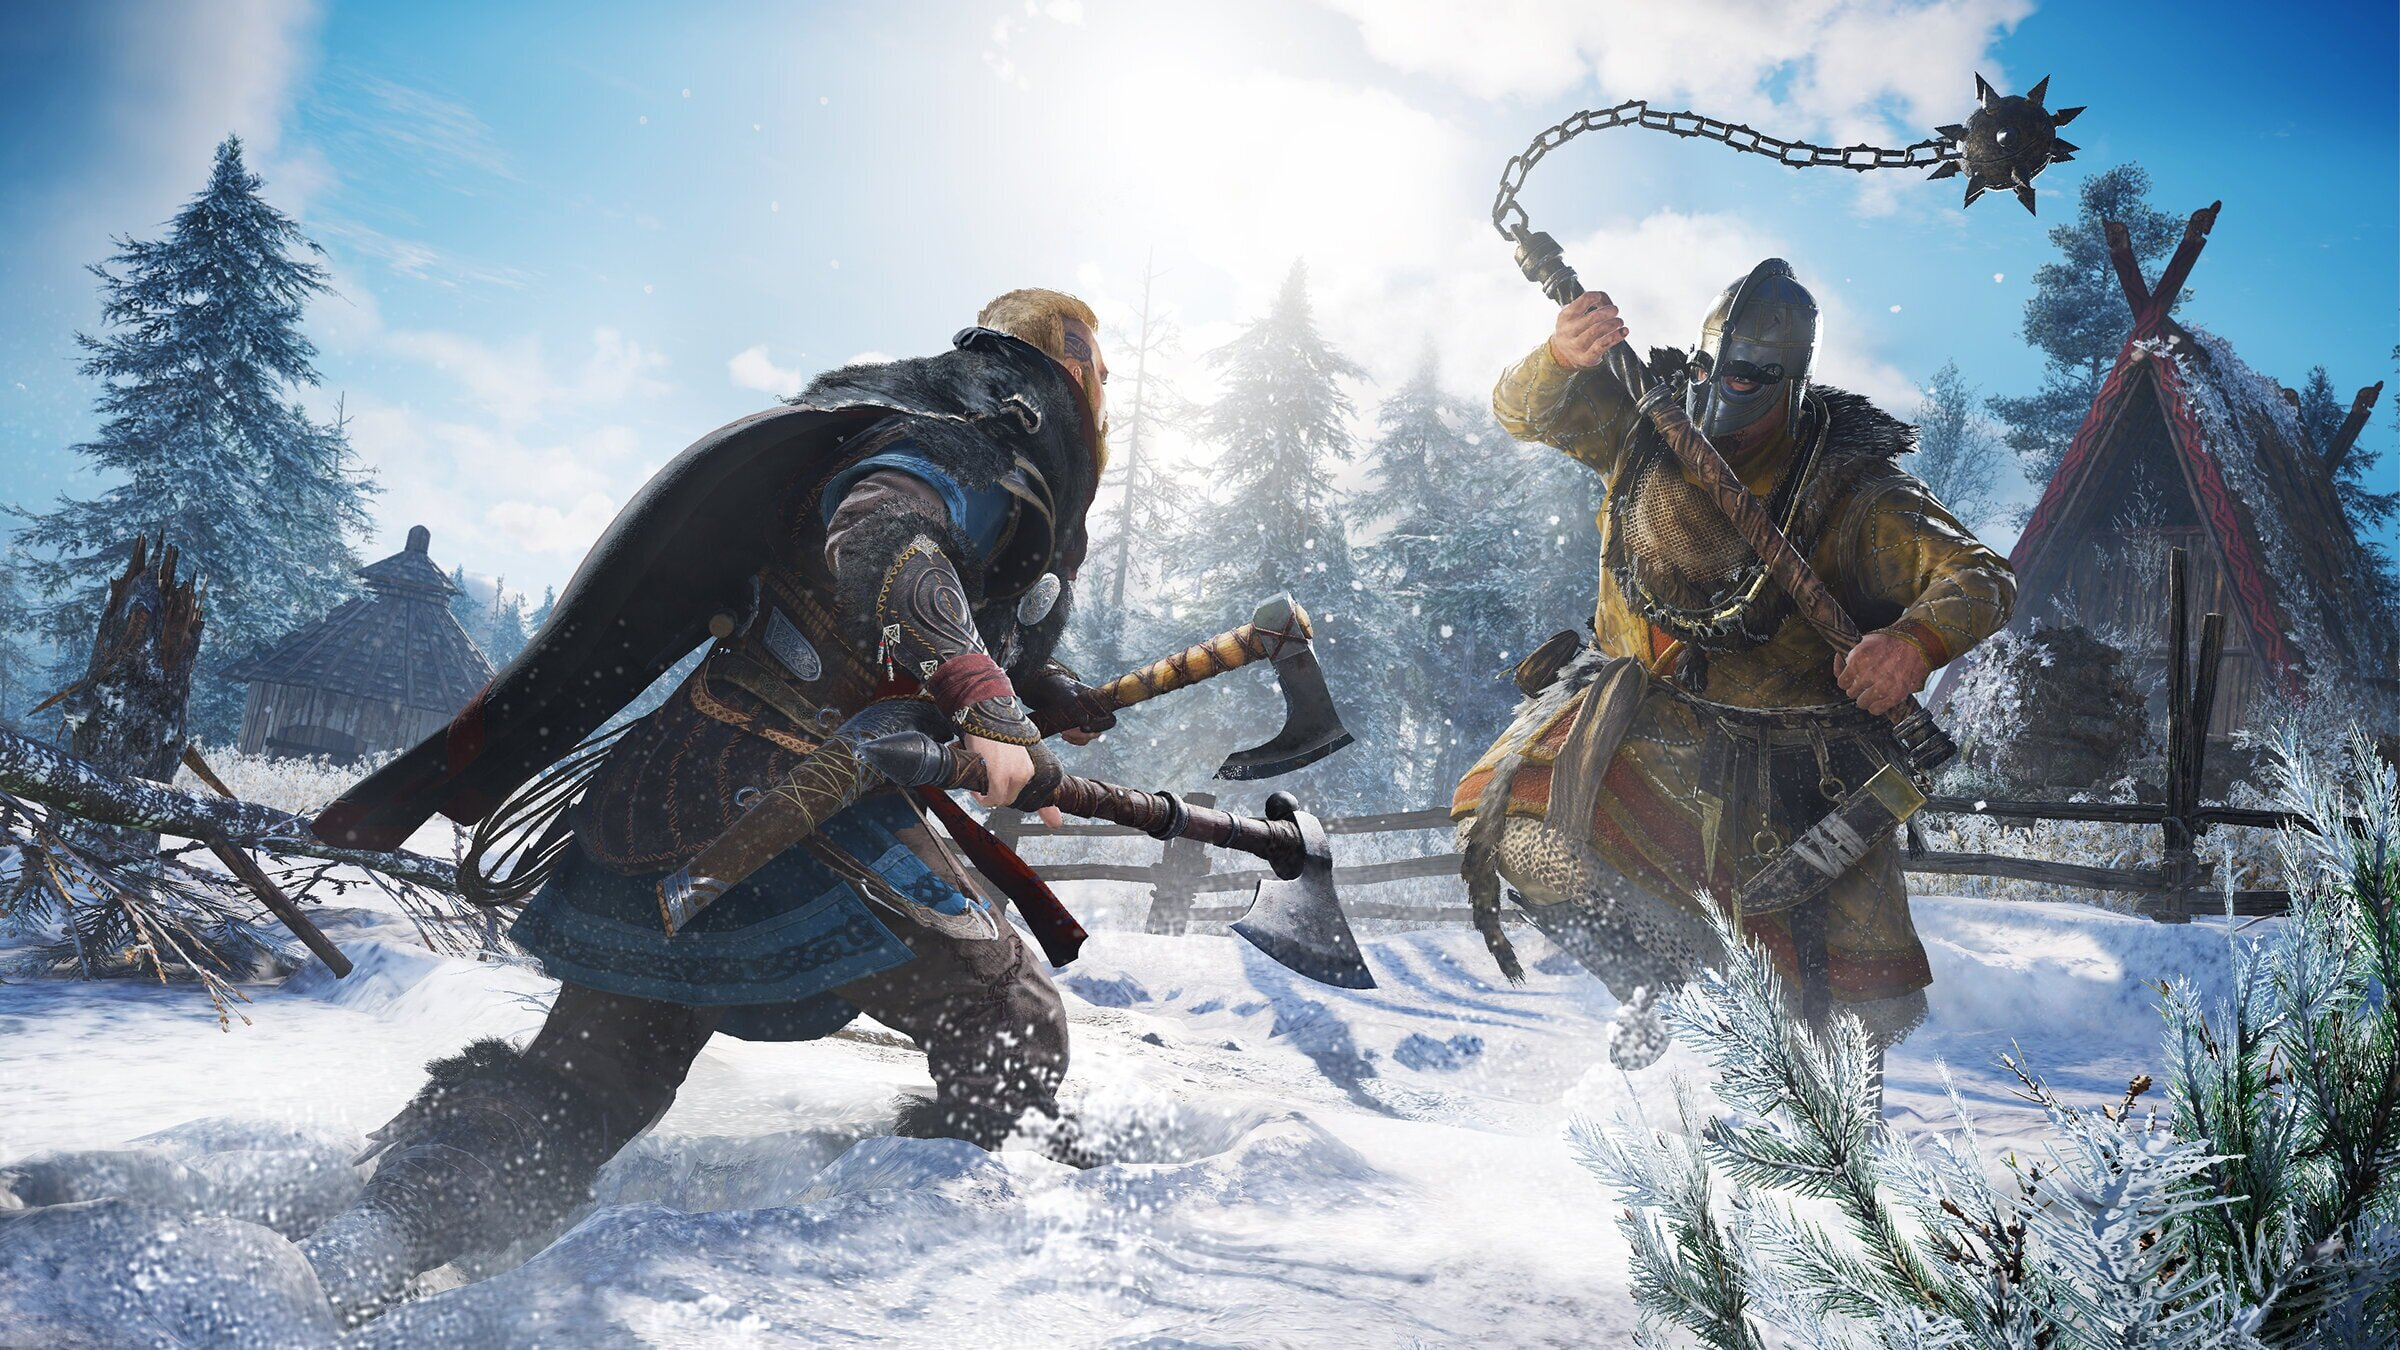 Best of 2014 Game Awards - Game of the Year 2014